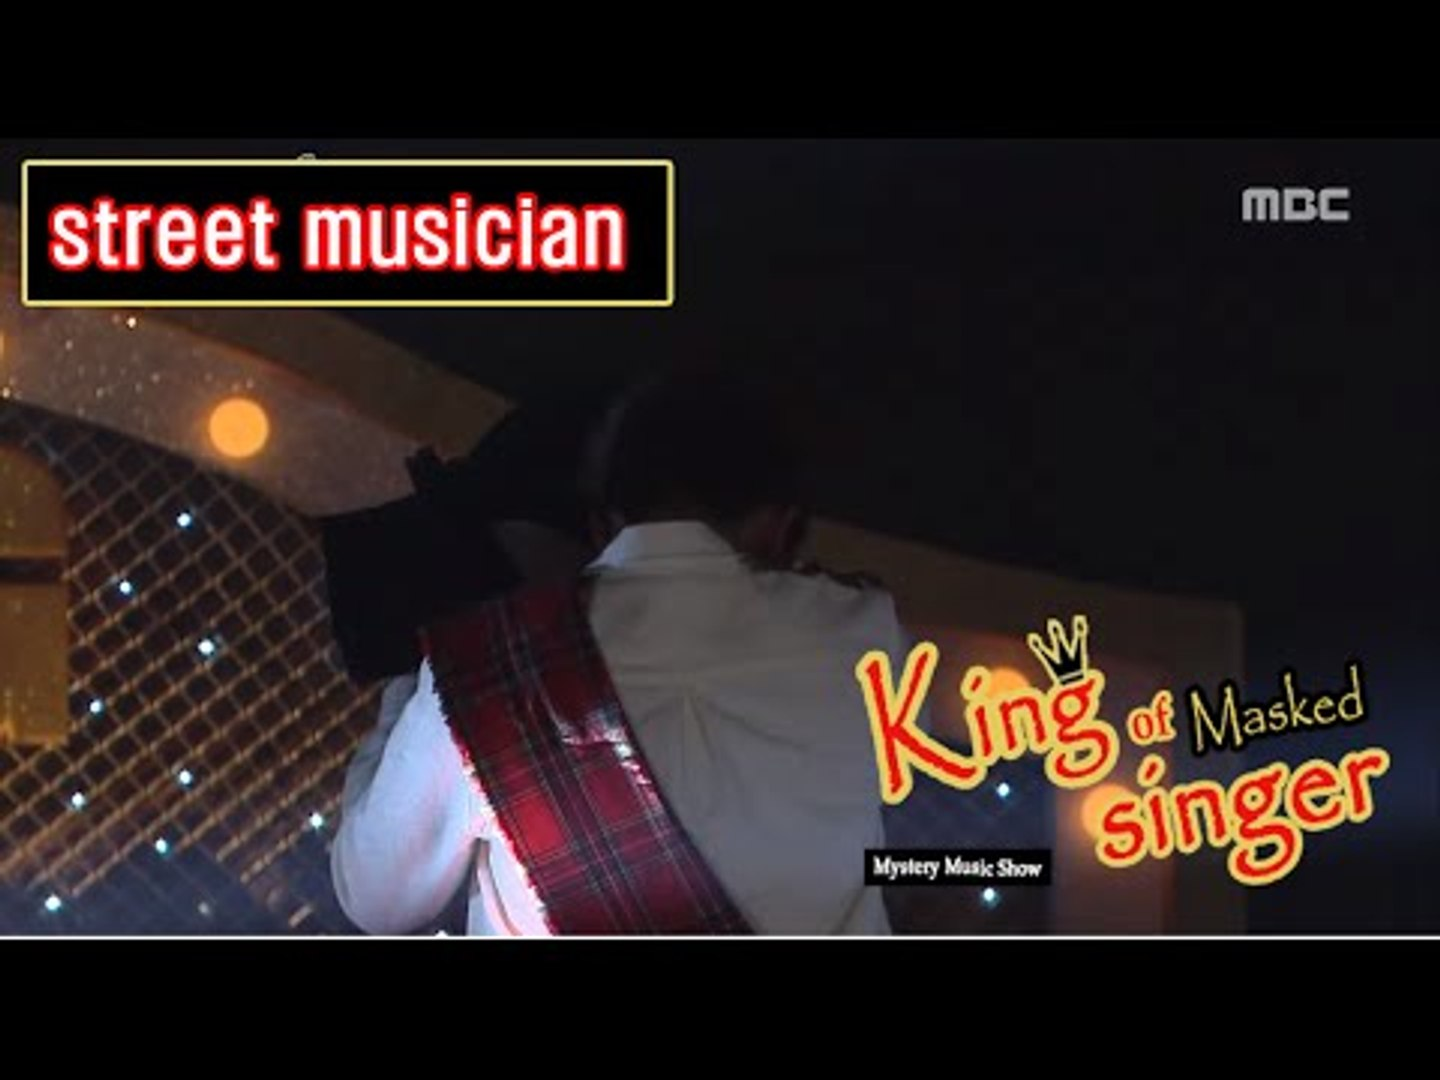 [King of masked singer] 복면가왕 - 'street musician' Identity 20160605